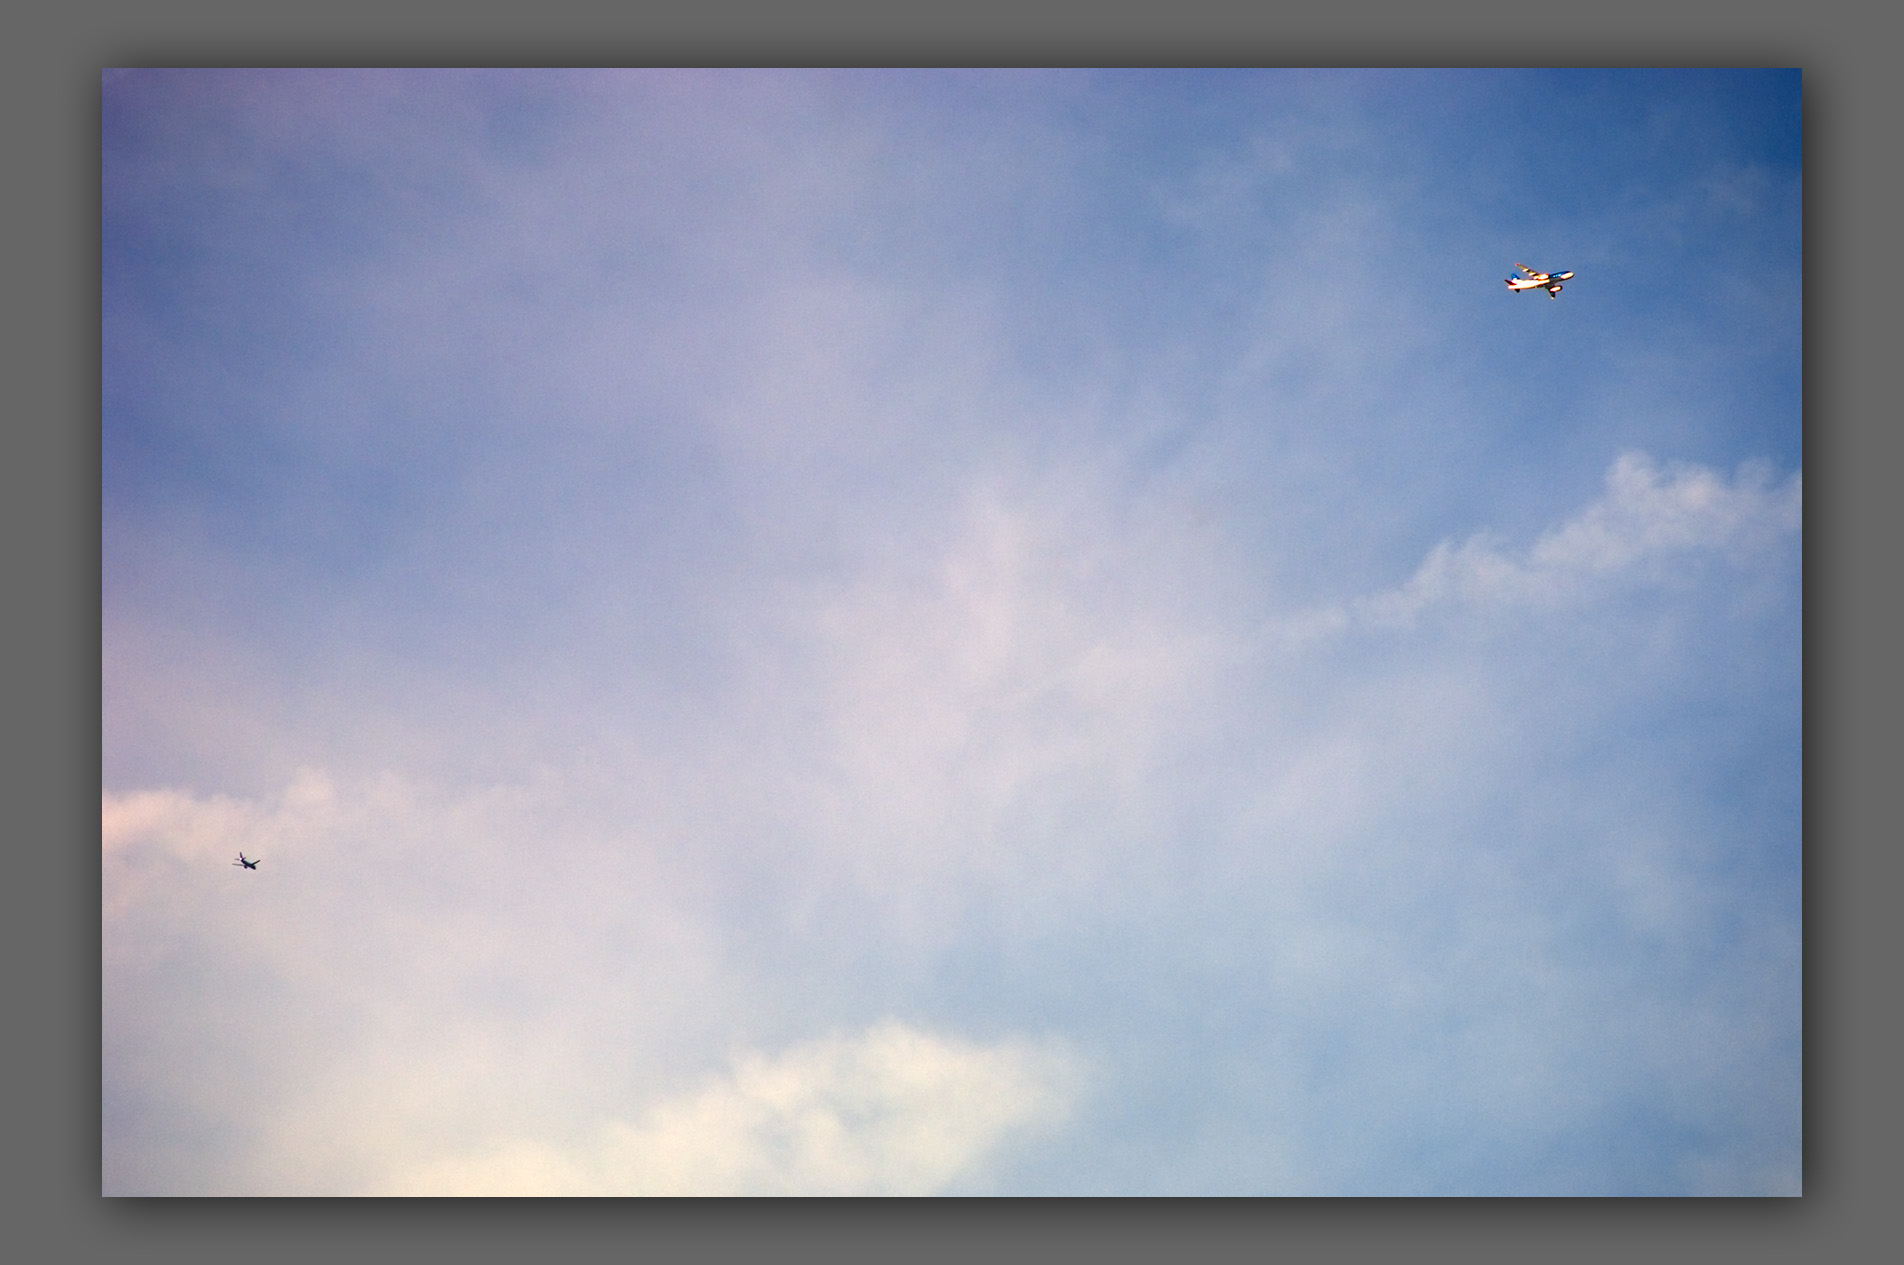 """Two airplanes, clouds and sky - from the """"Out of Nowhere"""" series"""